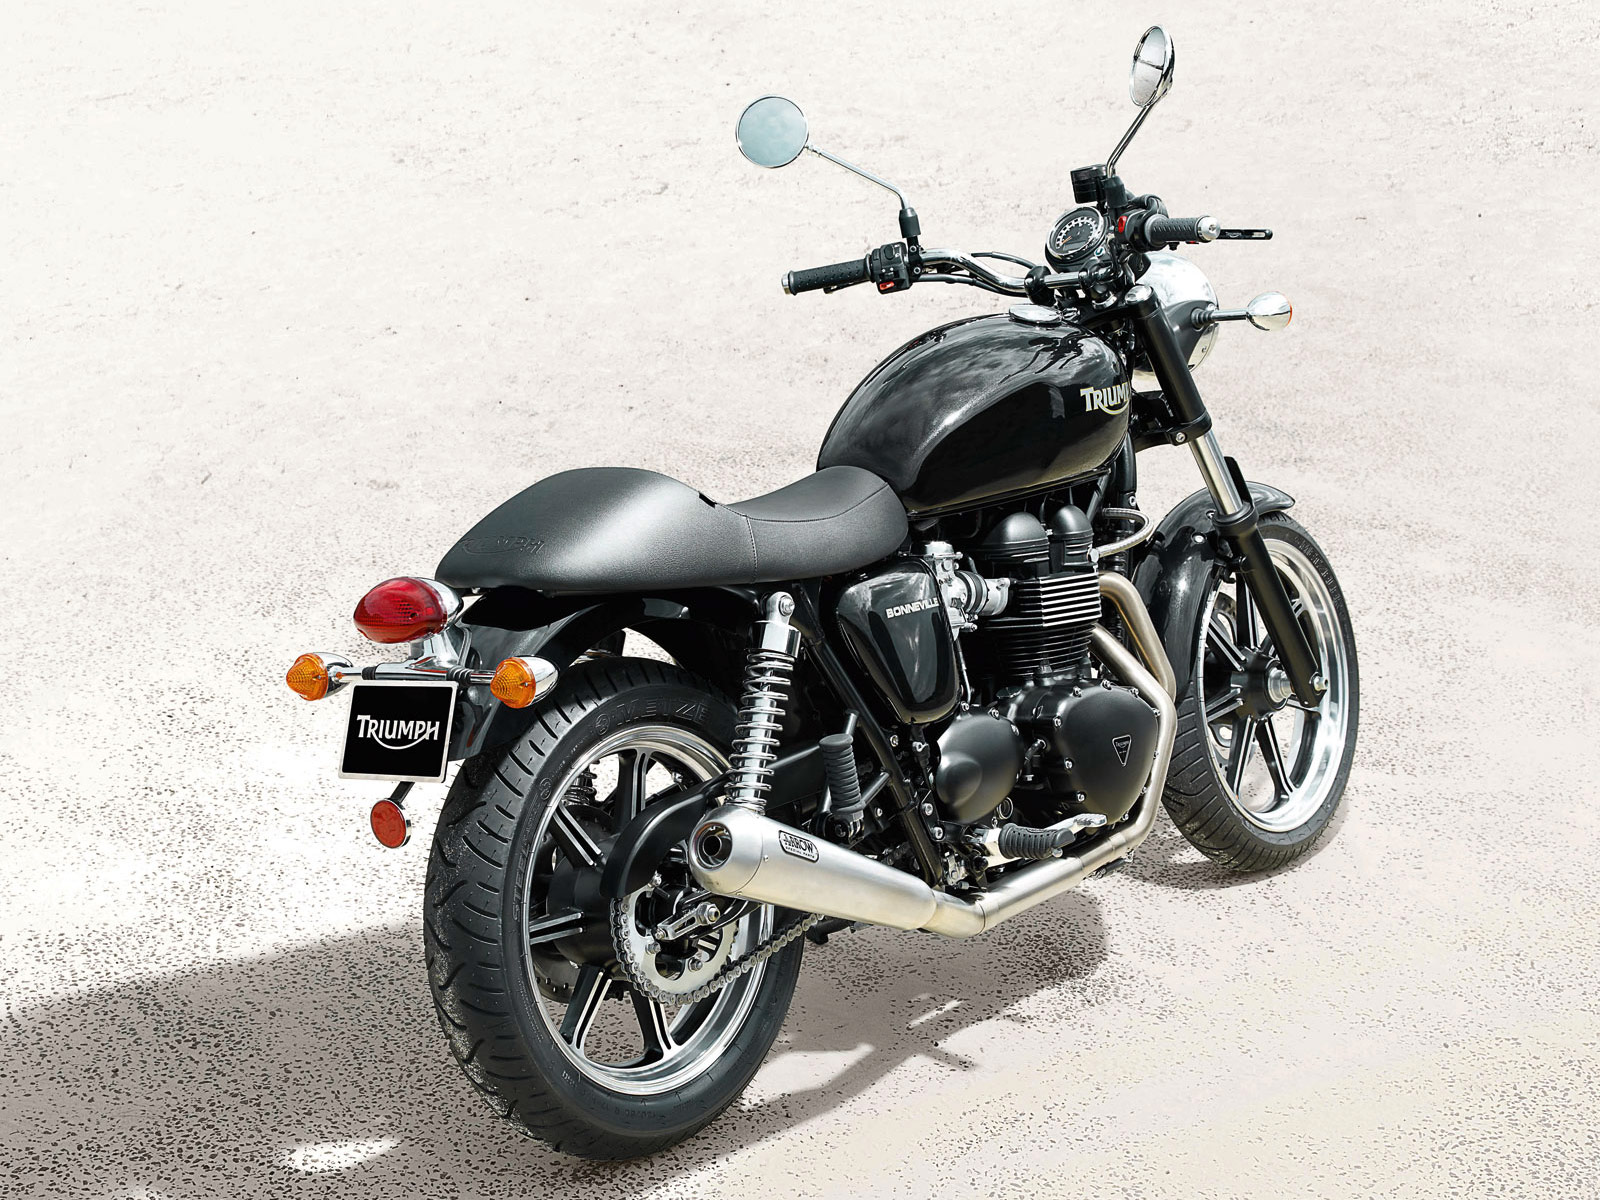 2012 Triumph Bonneville Motorcycle Insurance Information